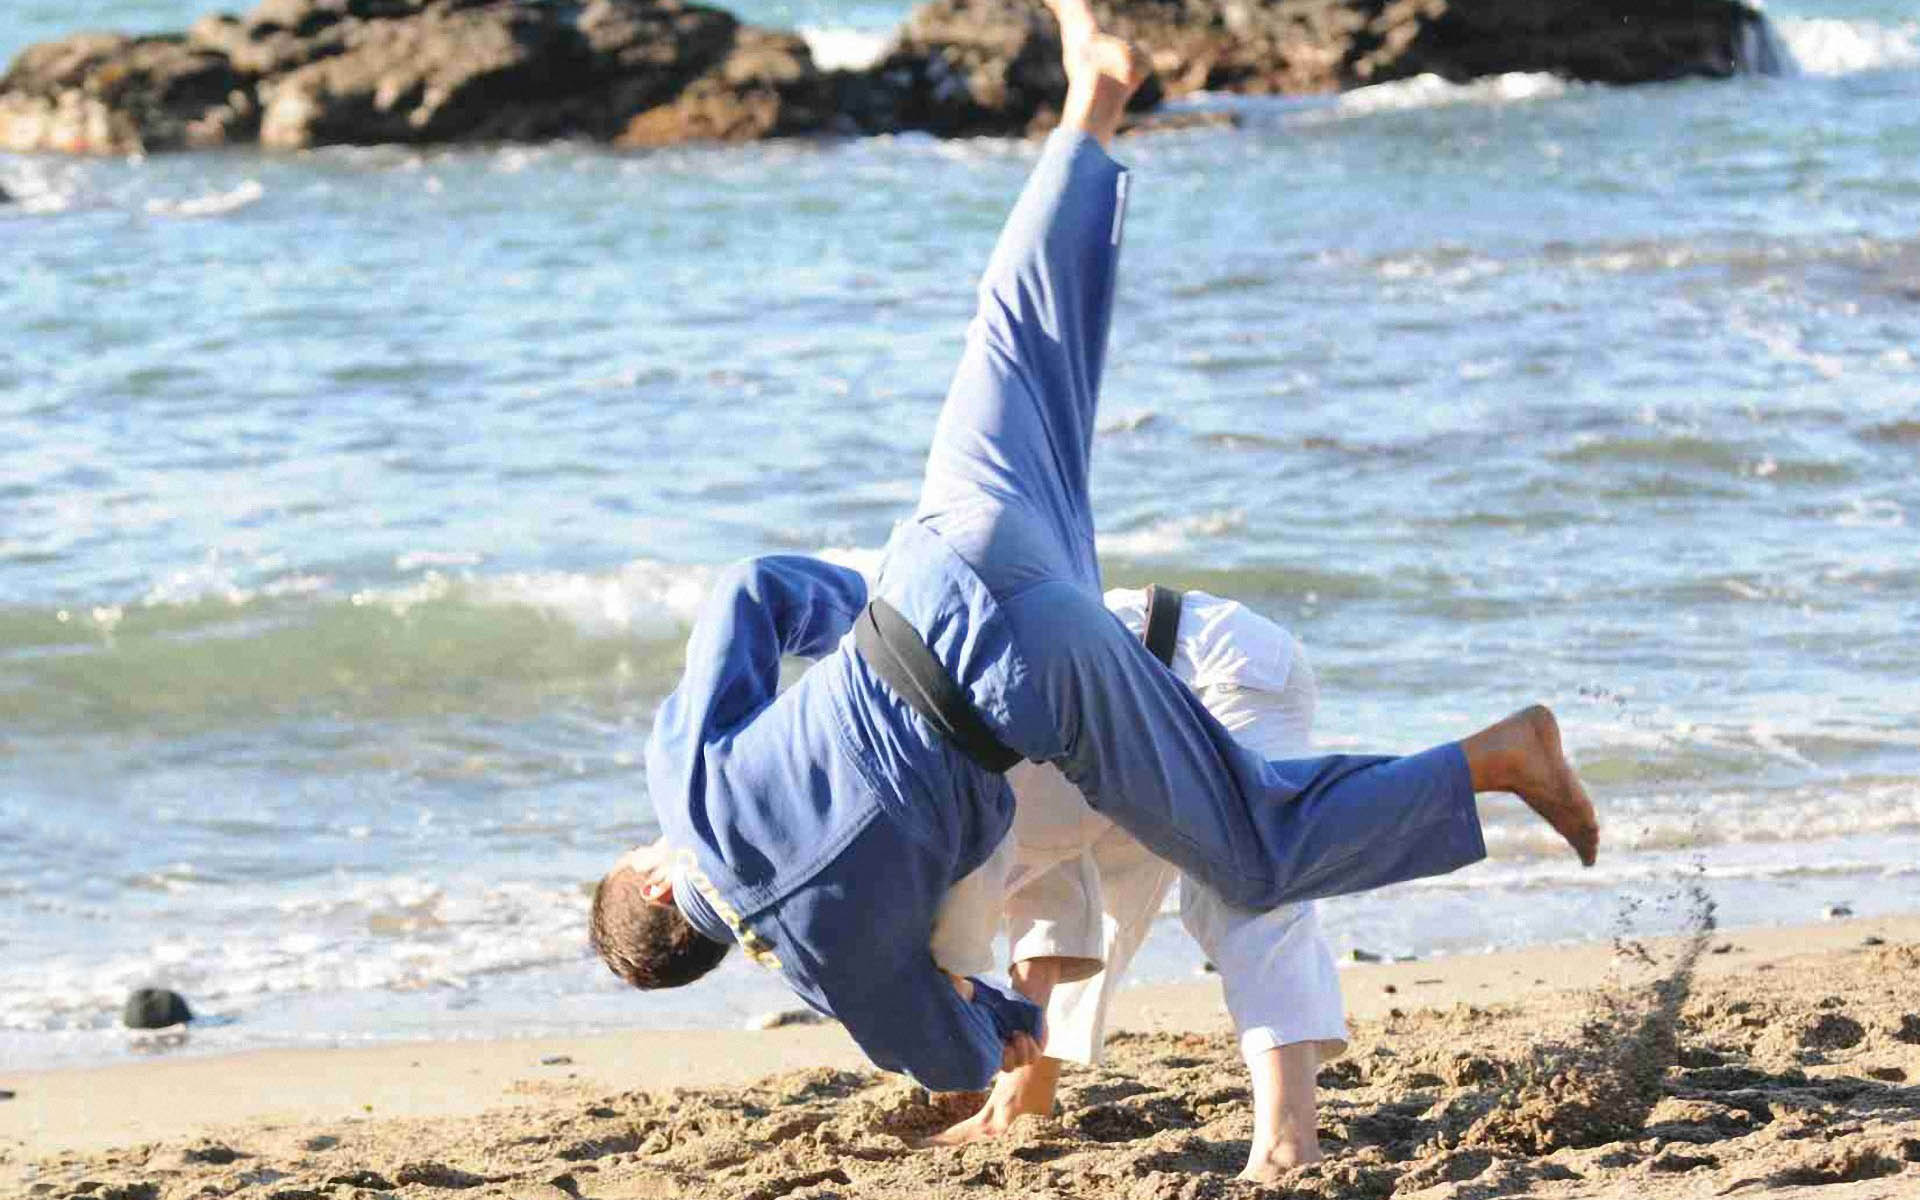 Judo beach 1920x1200 Wallpapers 1920x1200 Wallpapers Pictures 1920x1200